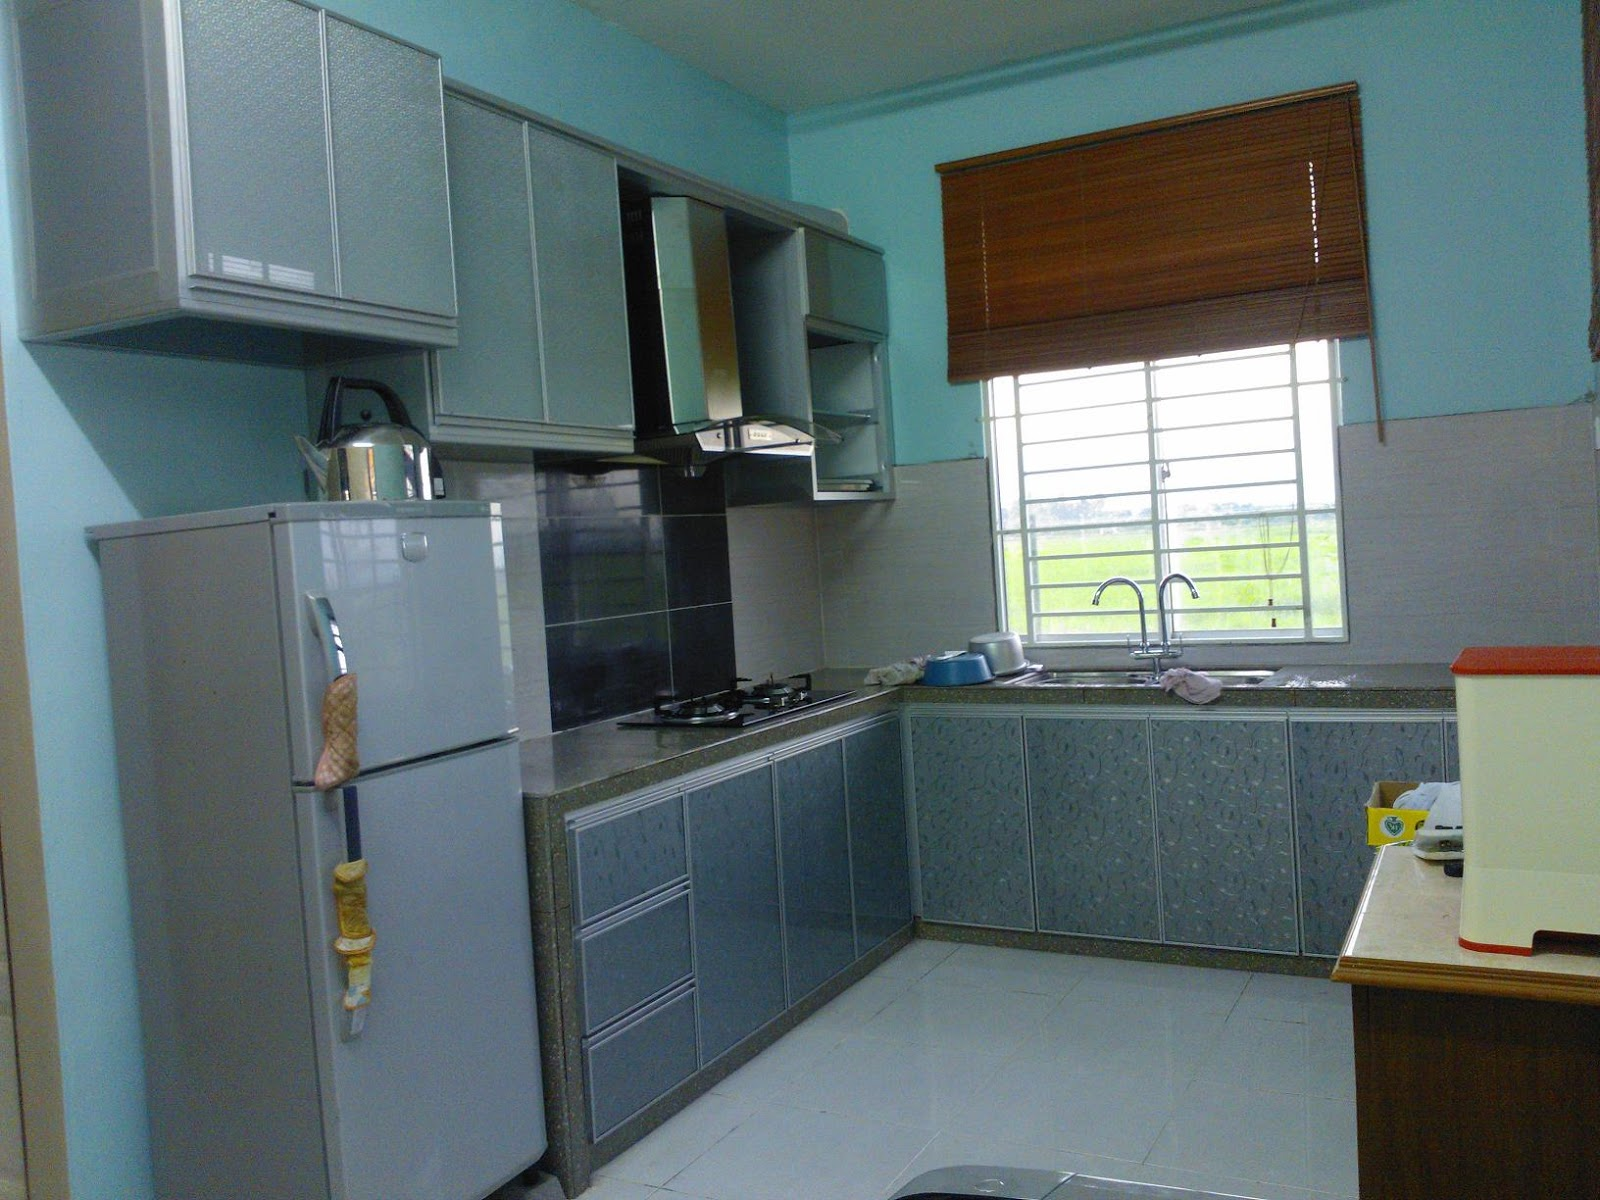 Kabinet dapur kecil 2014 ask home design for Kitchen set hitam putih